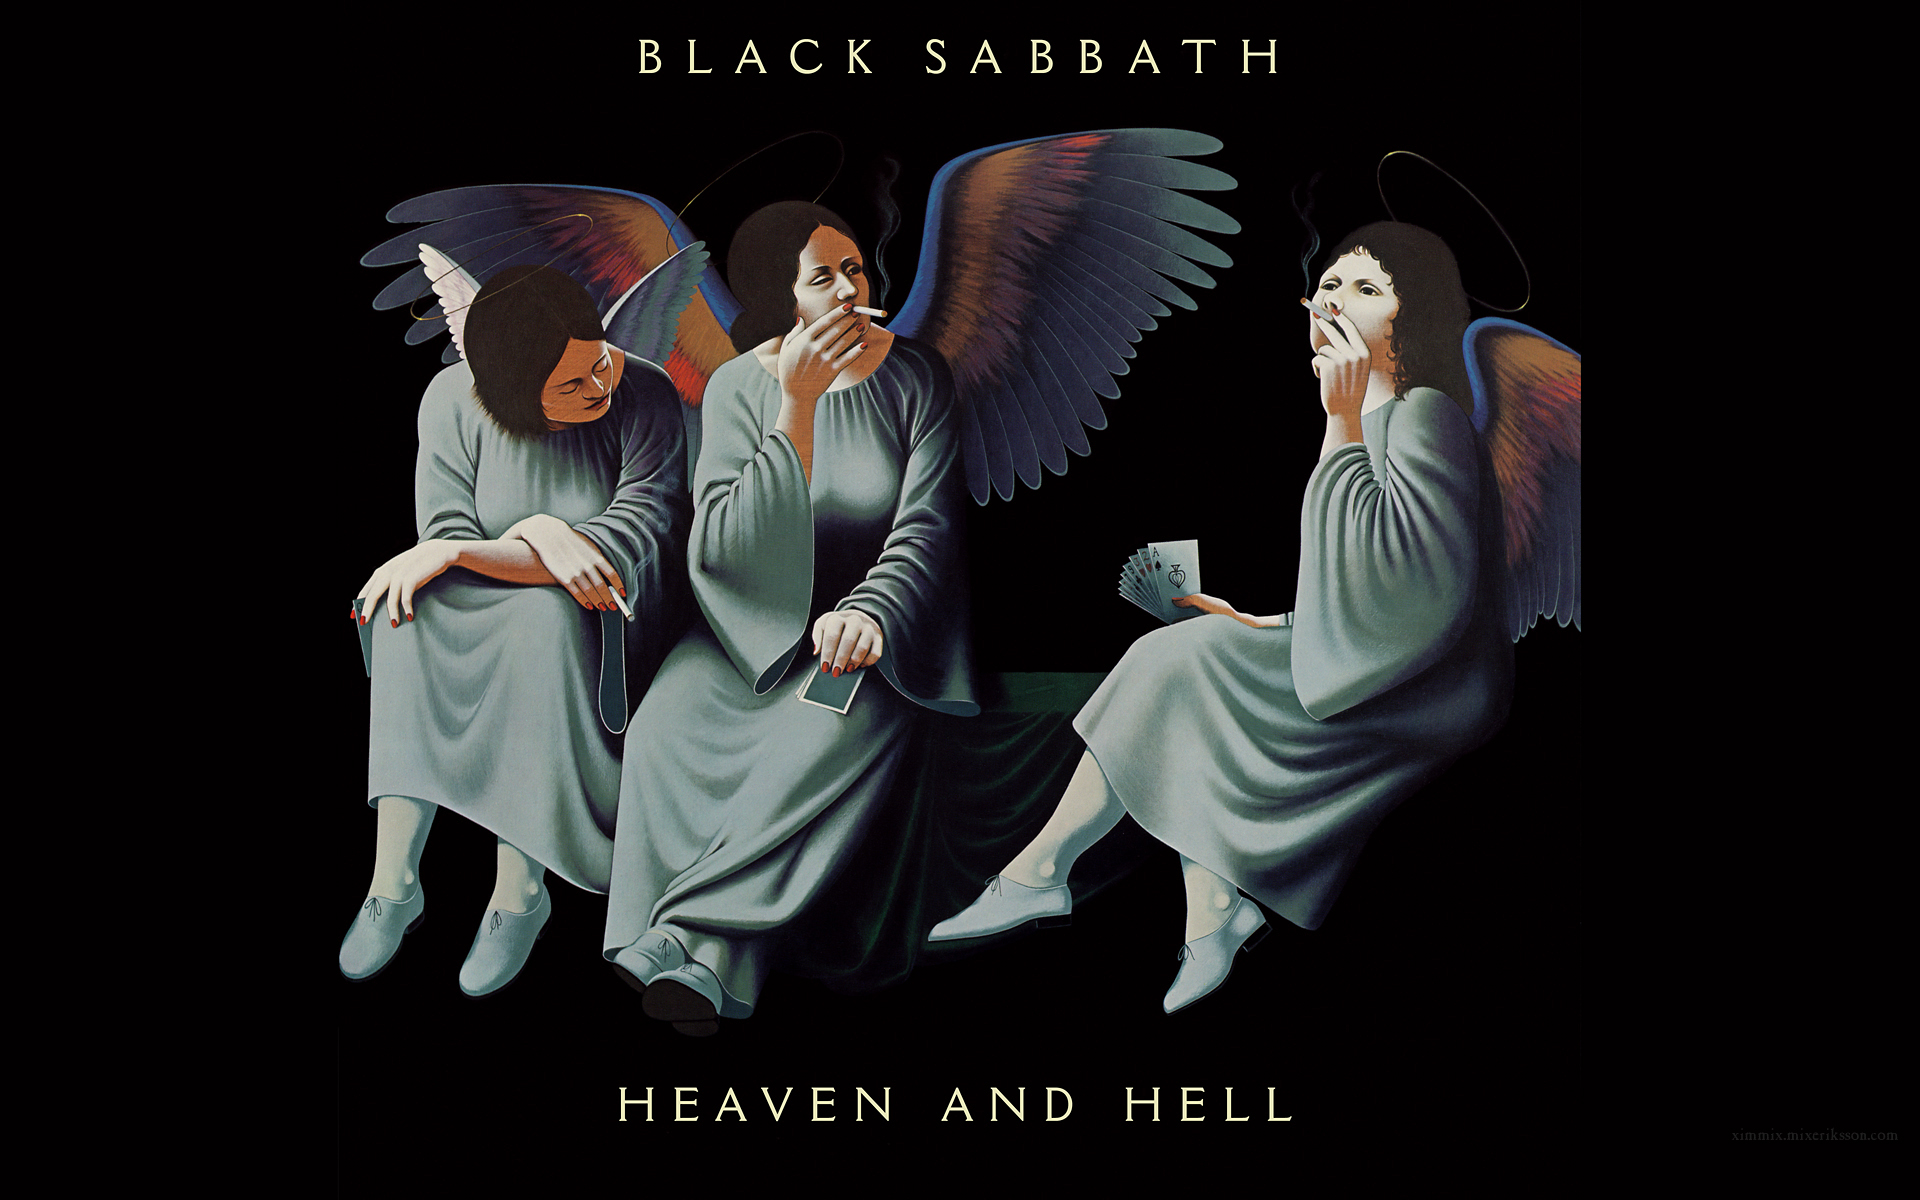 Black Sabbath Full Hd Wallpaper And Background Image -2756